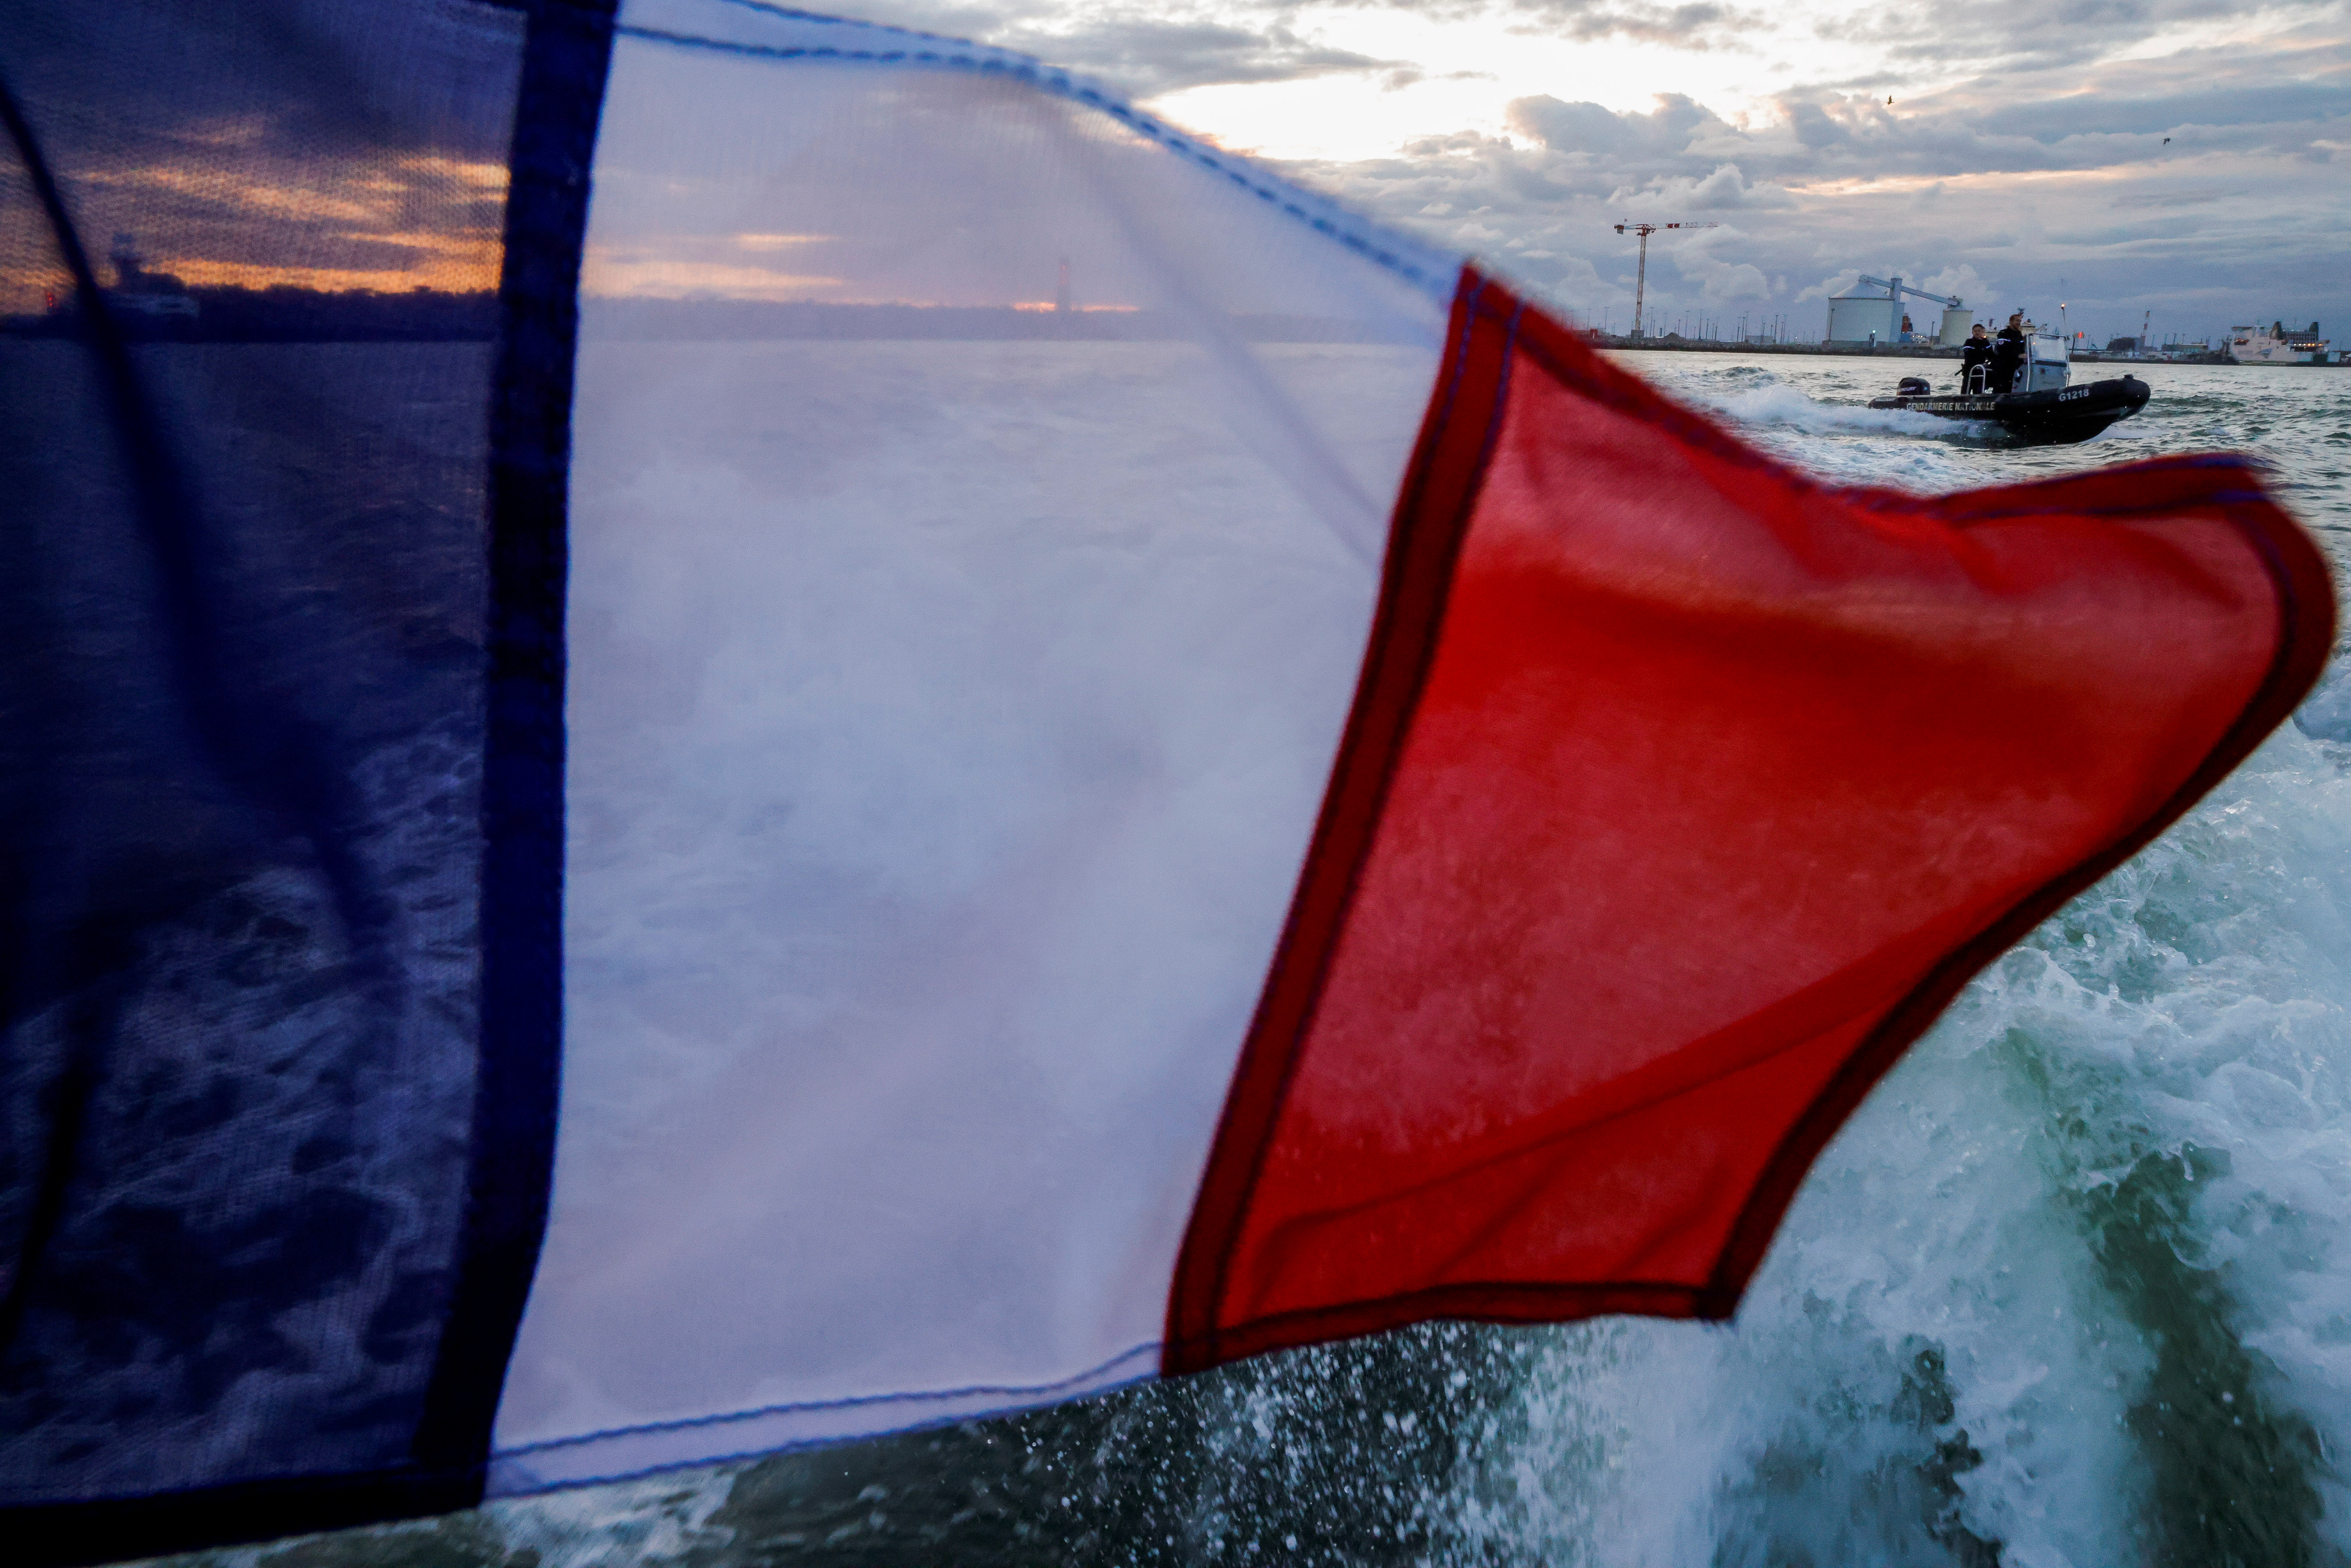 The flag of France is seen as French Gendarmerie officers patrol with a dinghy along the French coast near Calais, France August 2, 2021. REUTERS/Pascal Rossignol